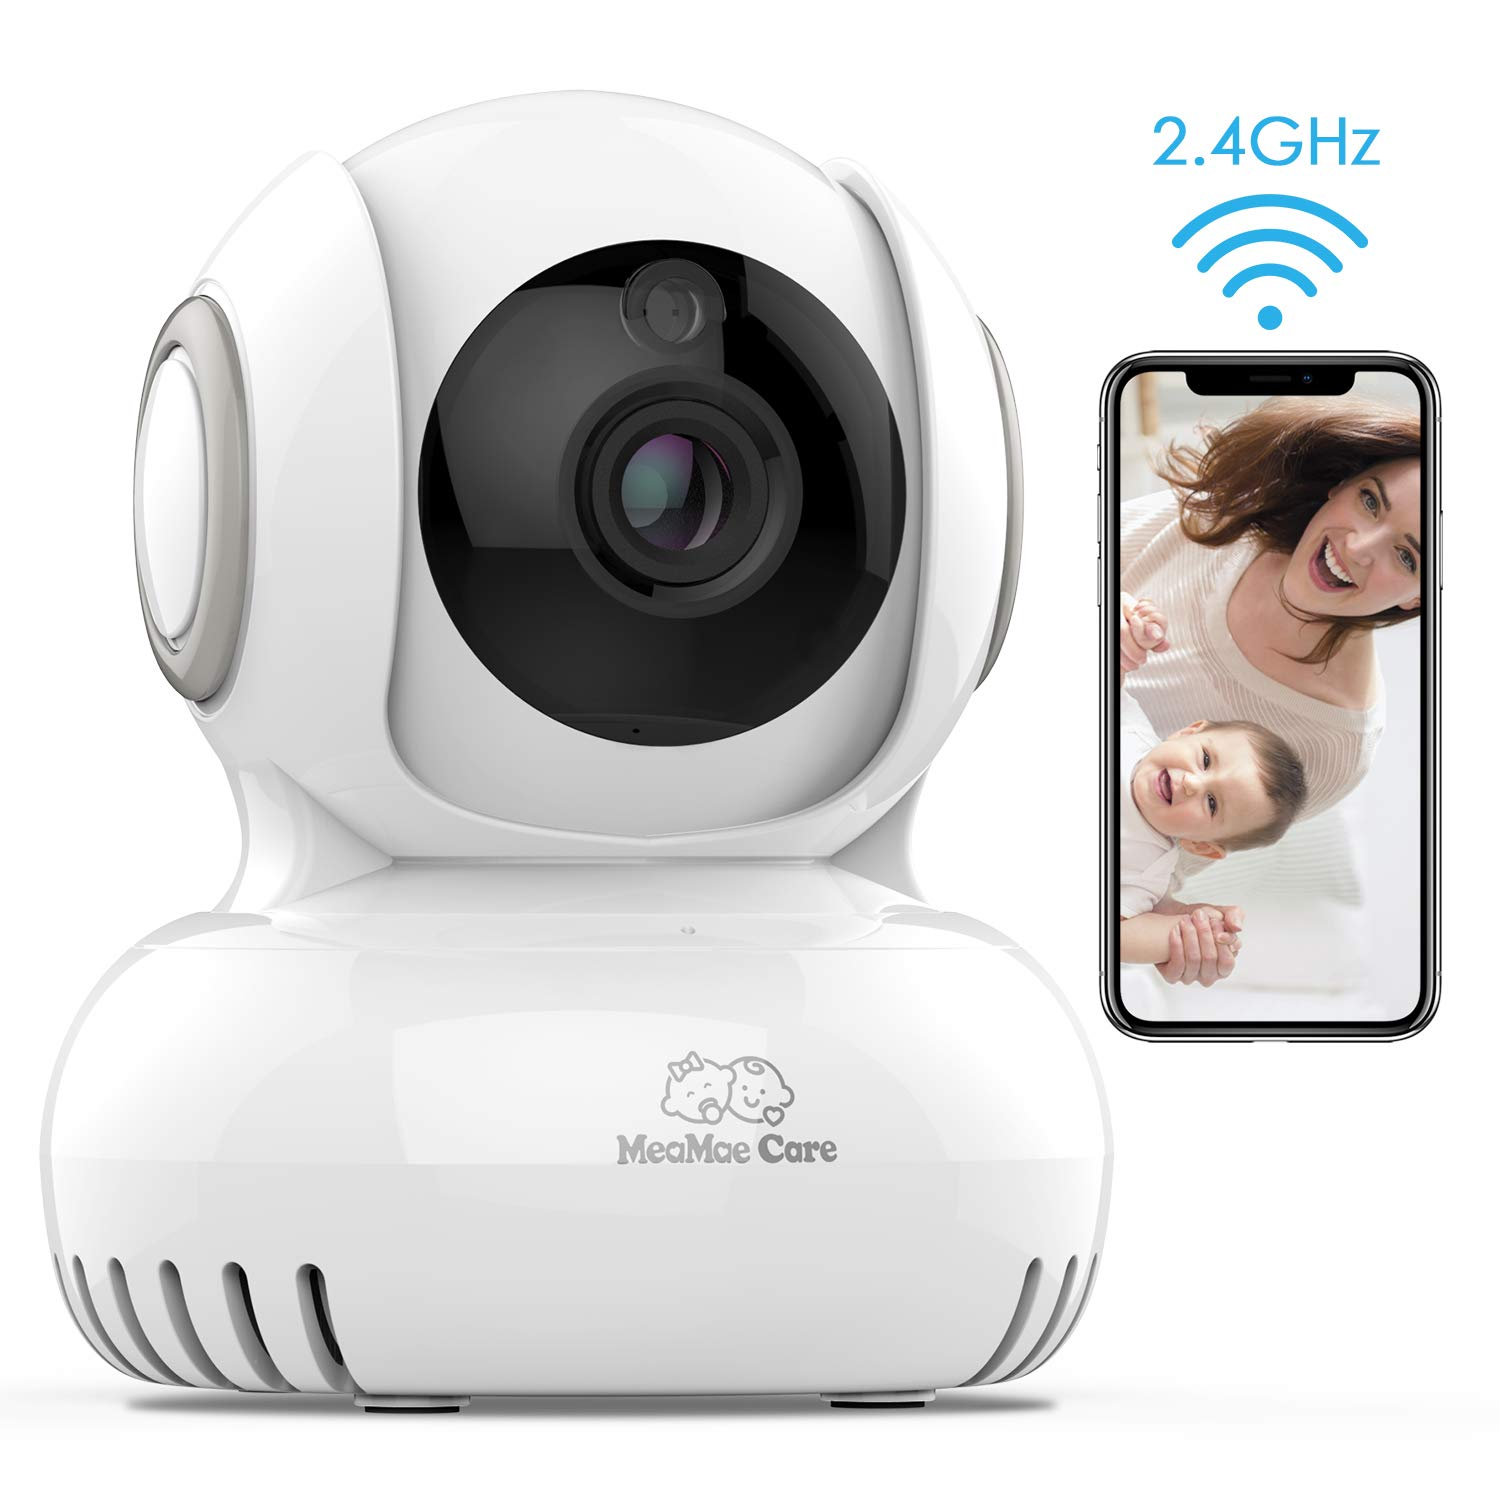 MeaMae Care WiFi Baby Monitor with Camera and 2-Way Audio-Lullabies Player, Motion&Temperature Sensor, WiFi Home Security IP Camera with Night Vision, Pan/Title/Zoom for Pet/Baby/Elder